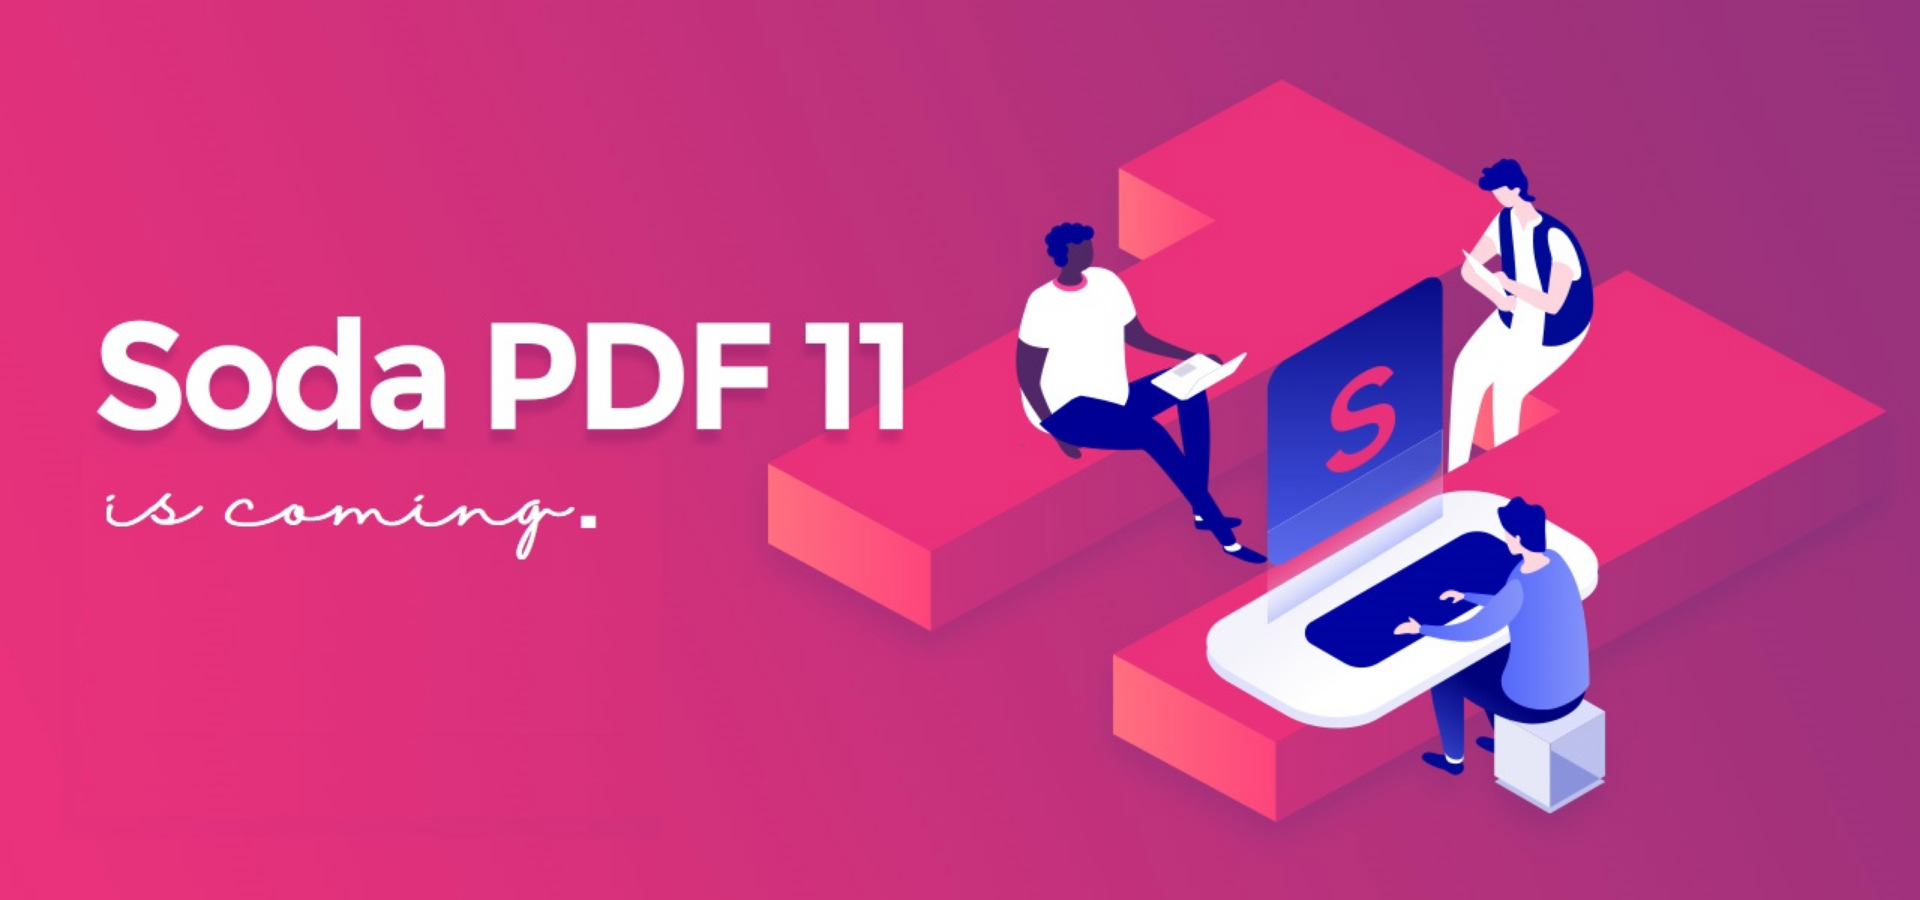 Soda PDF 11 Sneak Peek: Introducing Dynamic Forms